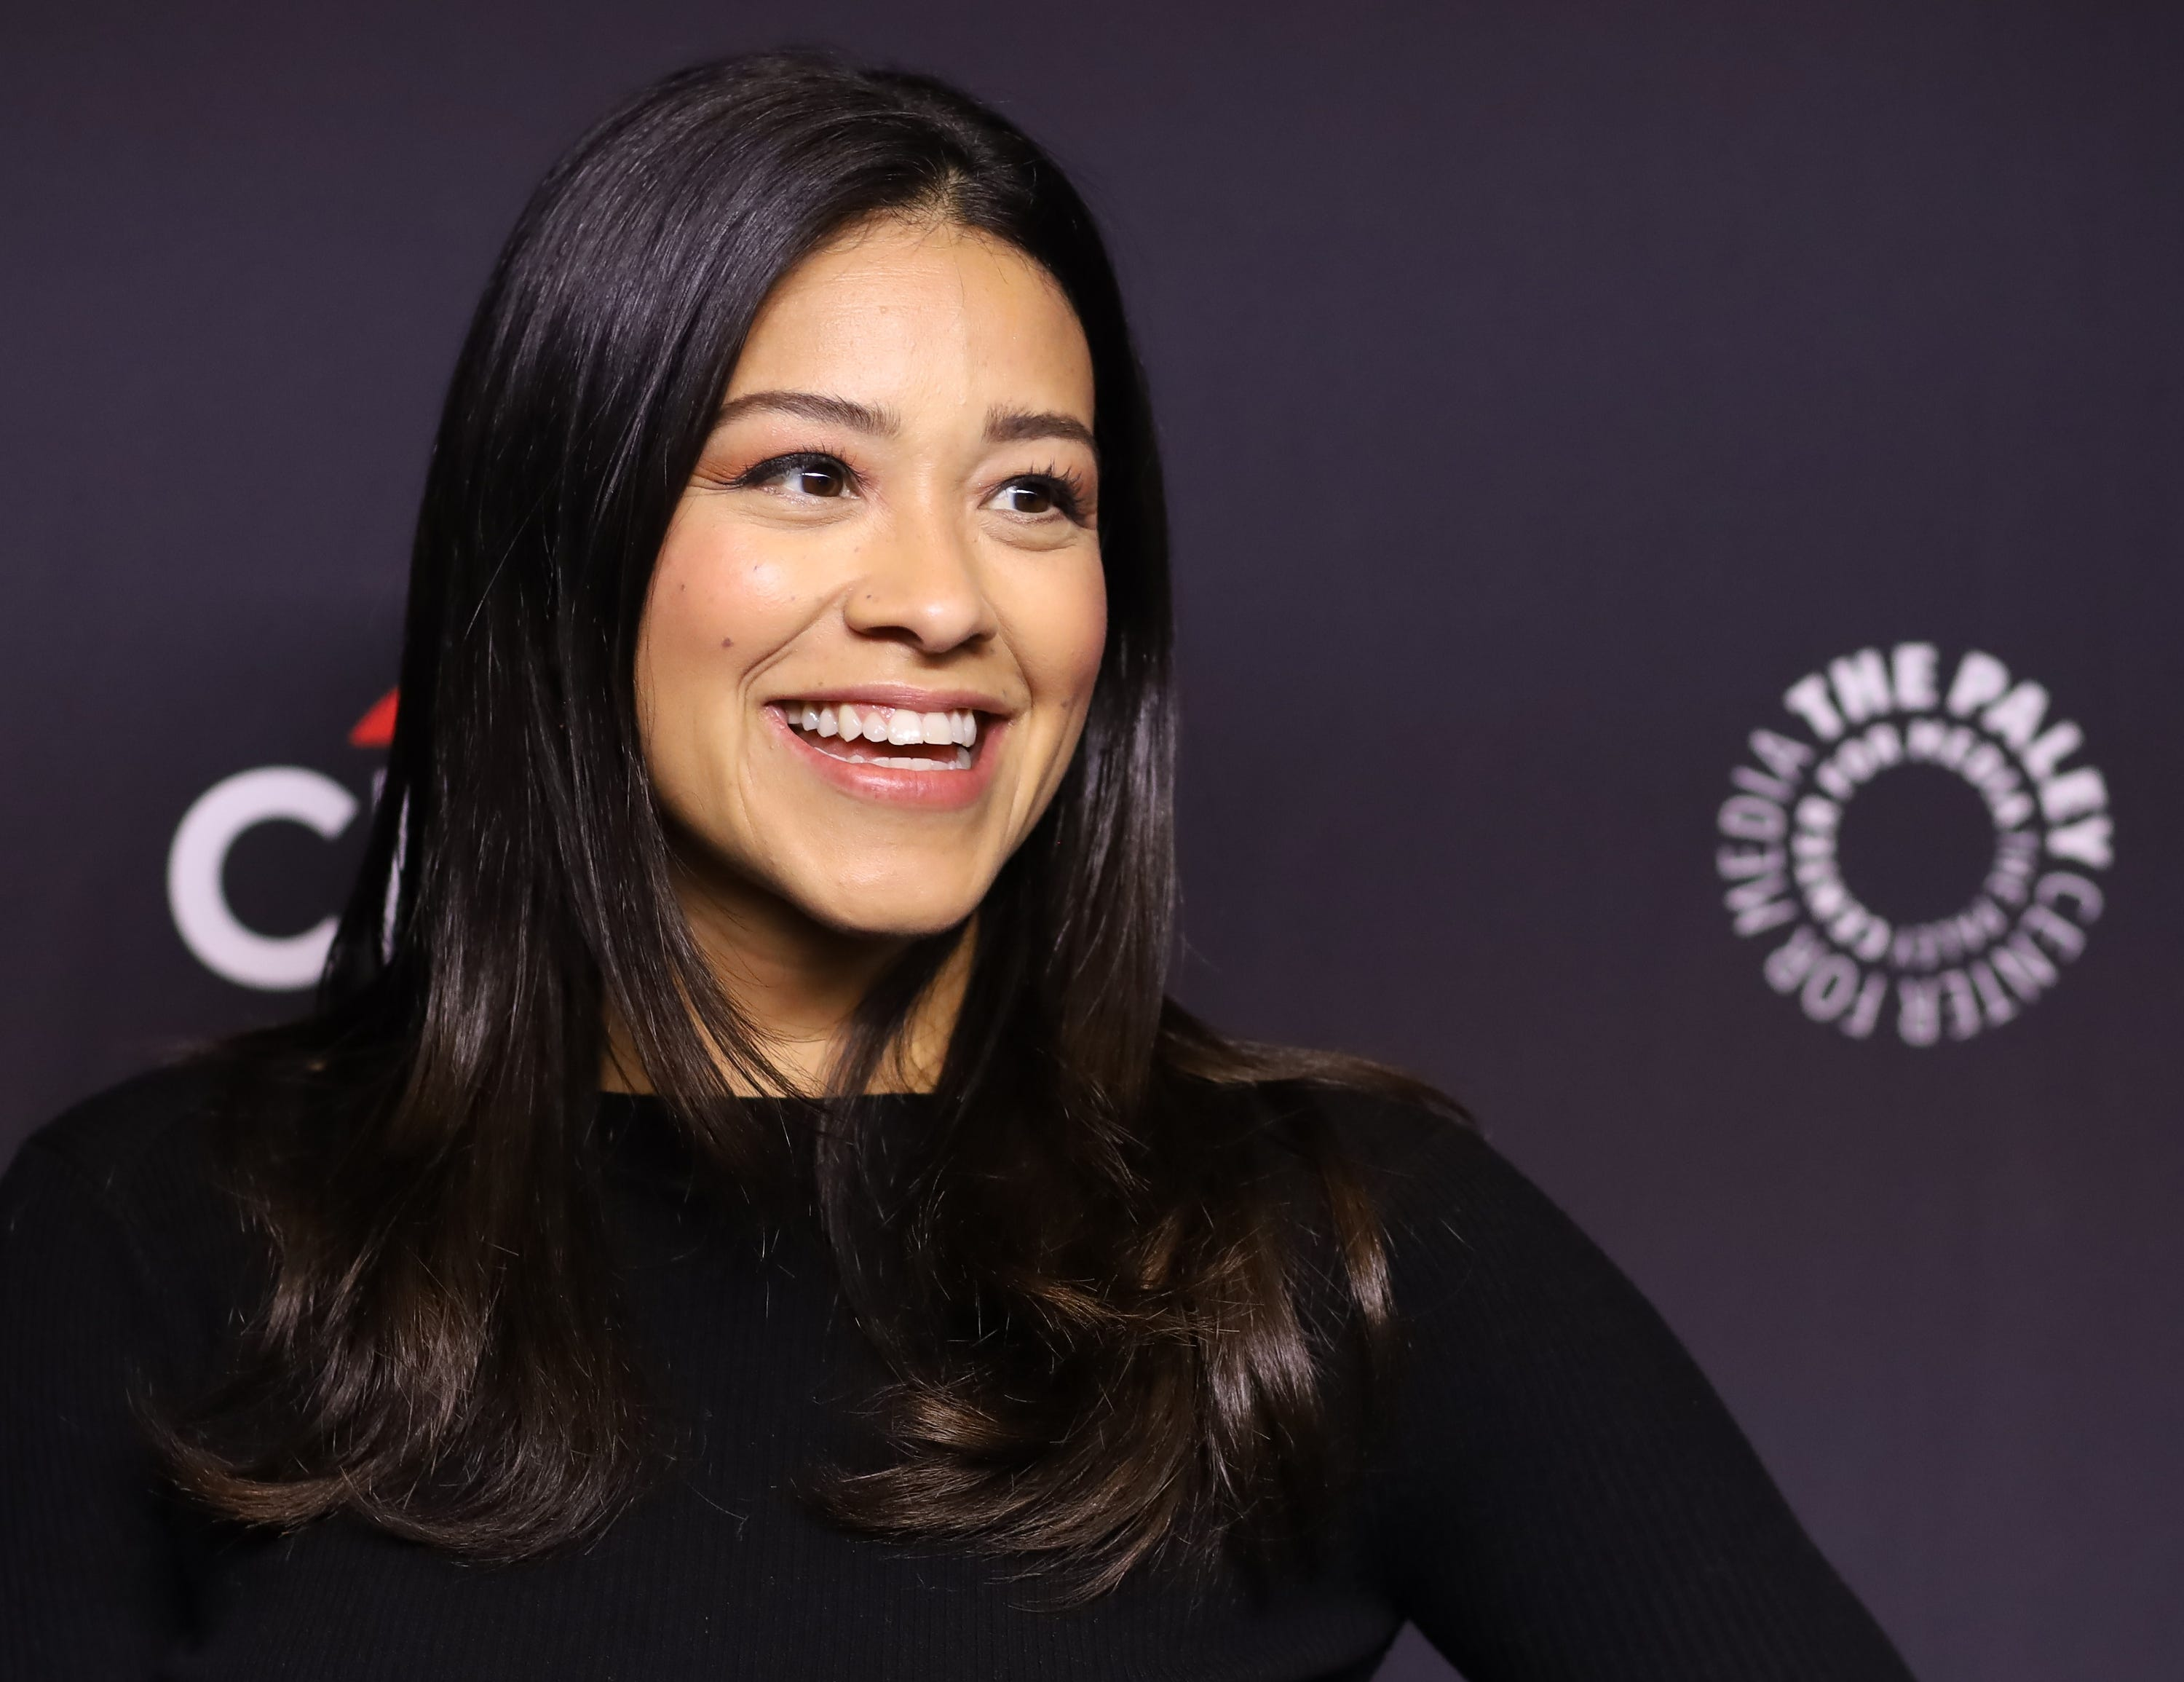 Gina Rodriguez apologizes following backlash for saying the N-word while singing on Instagram